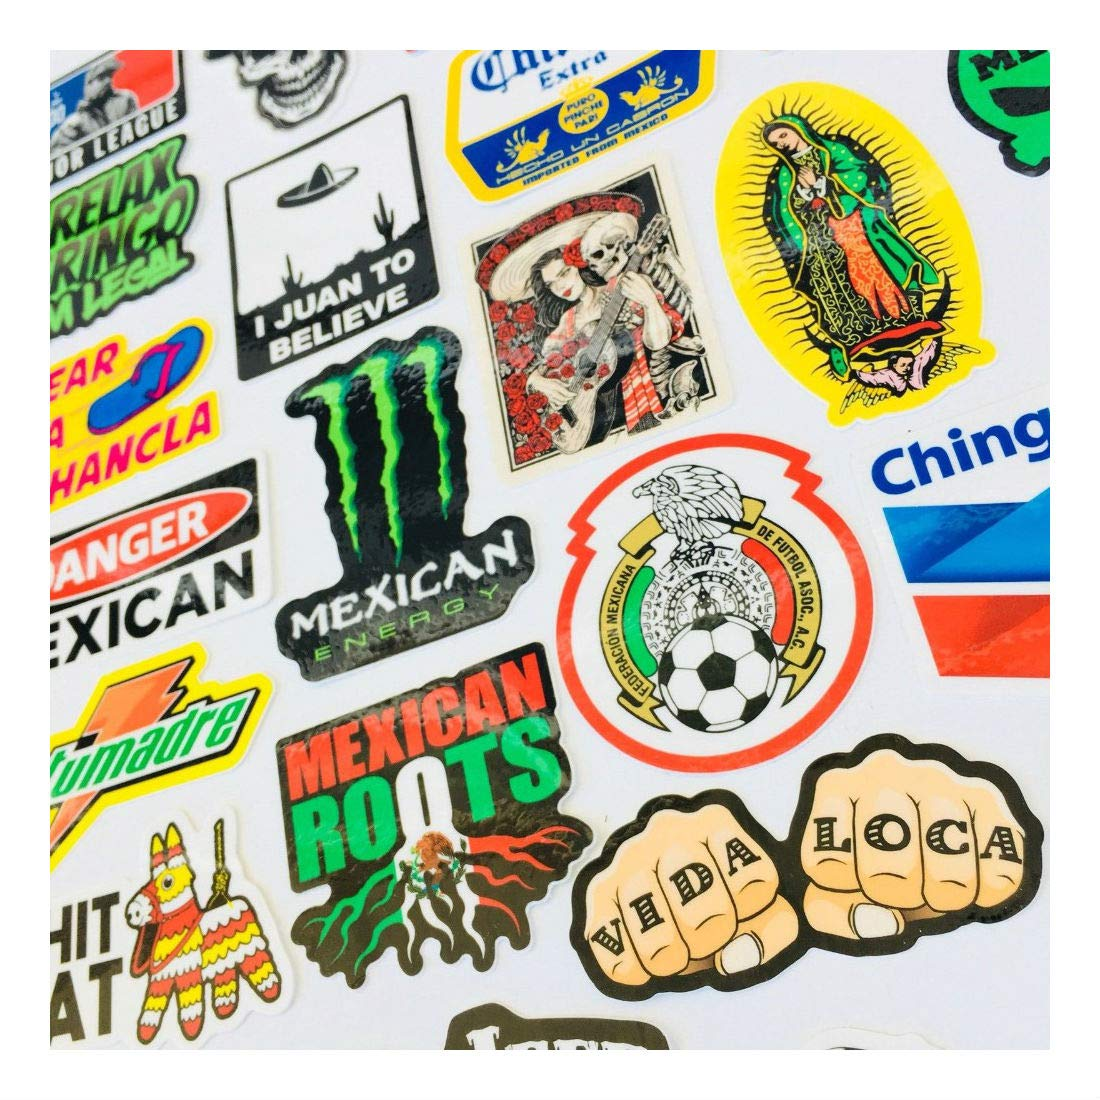 MEXICAN CHINGON Hard Hat Stickers 40 MEXICO HardHat Sticker Pegatinas cascos by Unknown (Image #5)